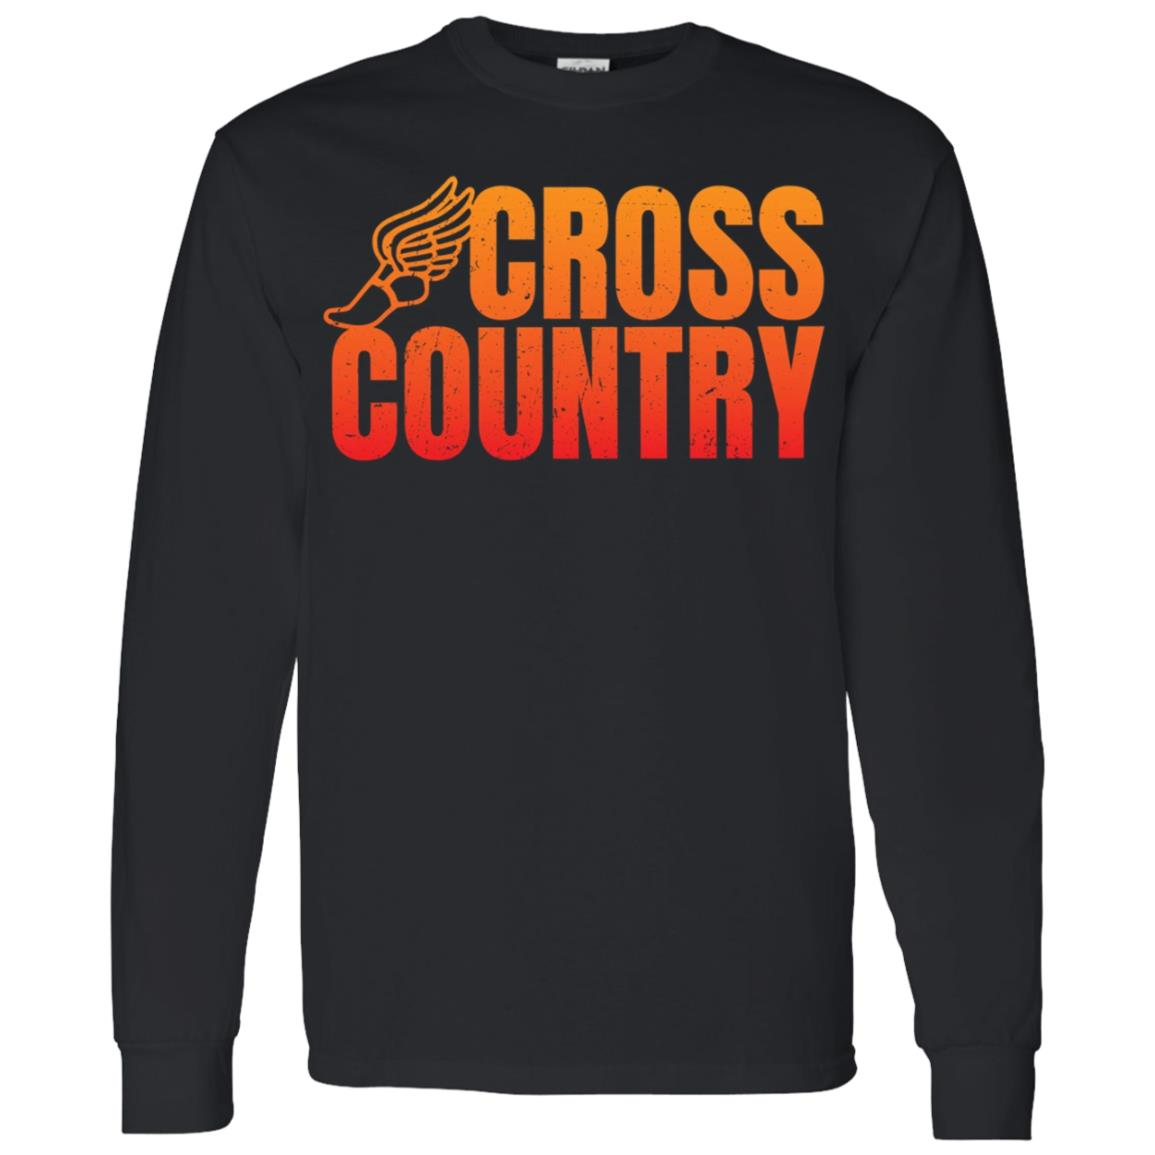 Cool Funny Cross Country Running Gift for Runners Men Long Sleeve T-Shirt